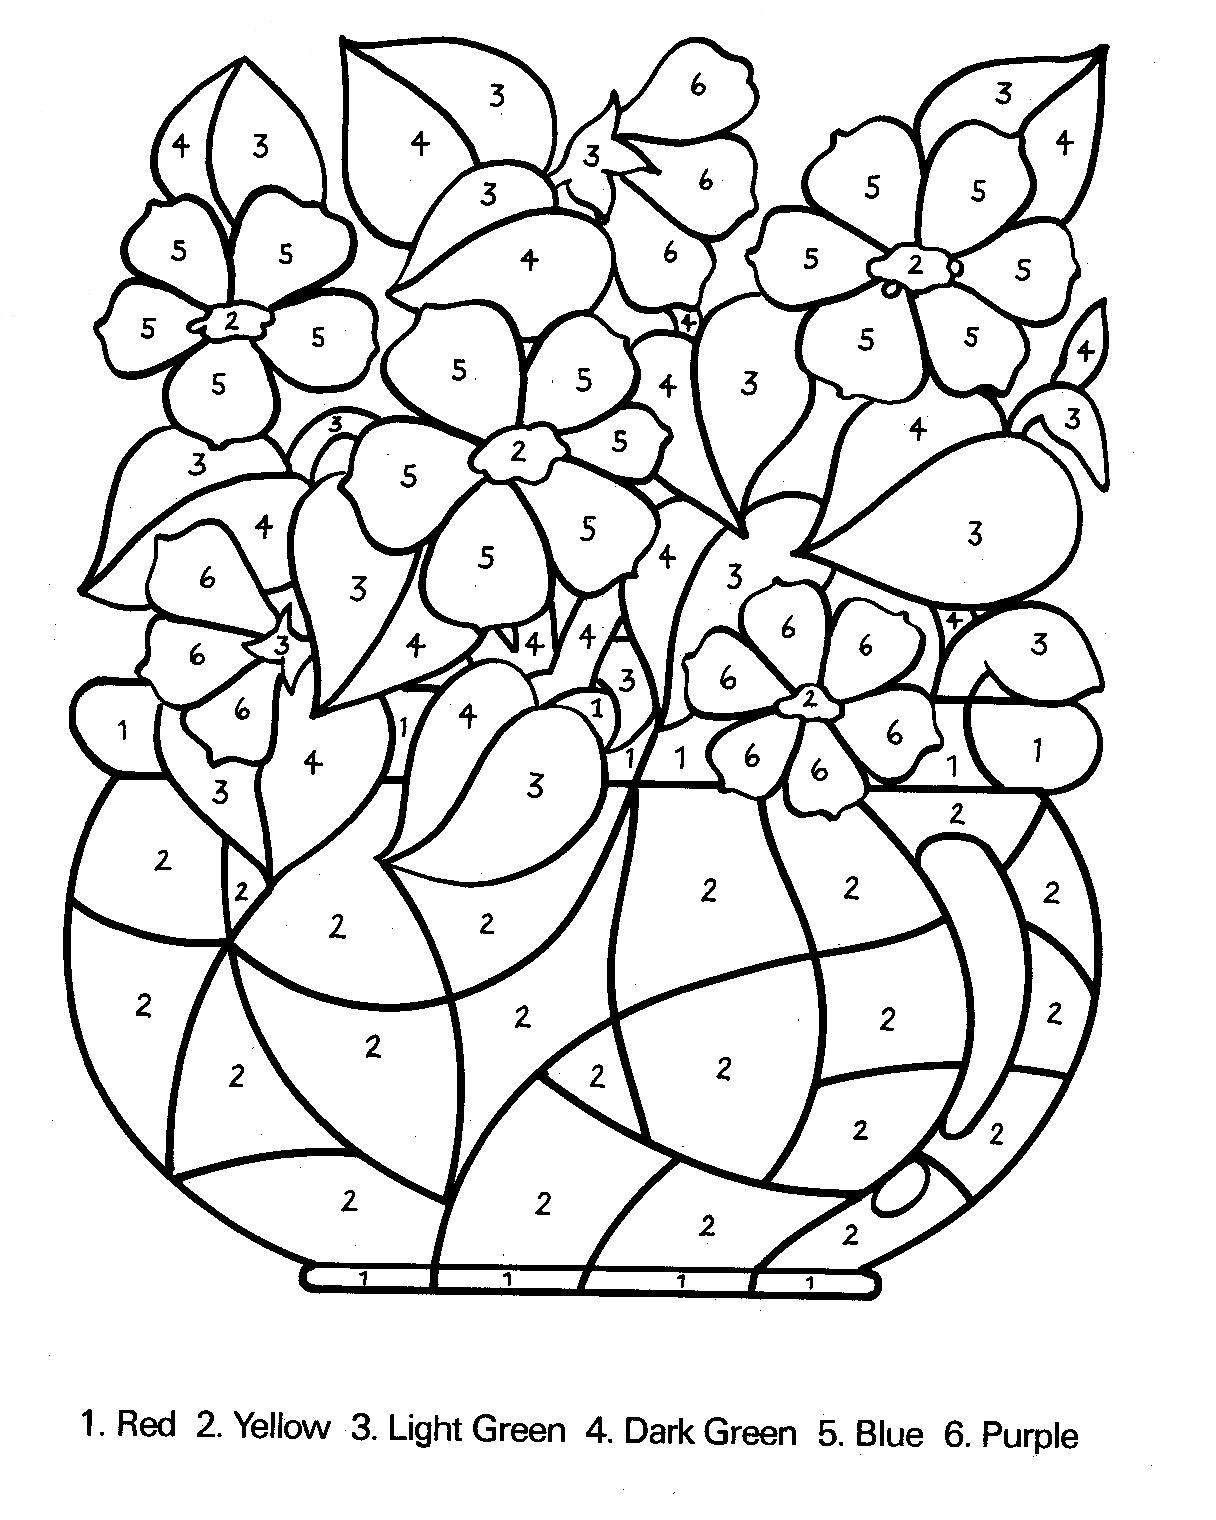 Flower coloring in pages - Number Flowers Coloring Sheets Digg Stumbleupon Del Icio Us Twitter Technorati